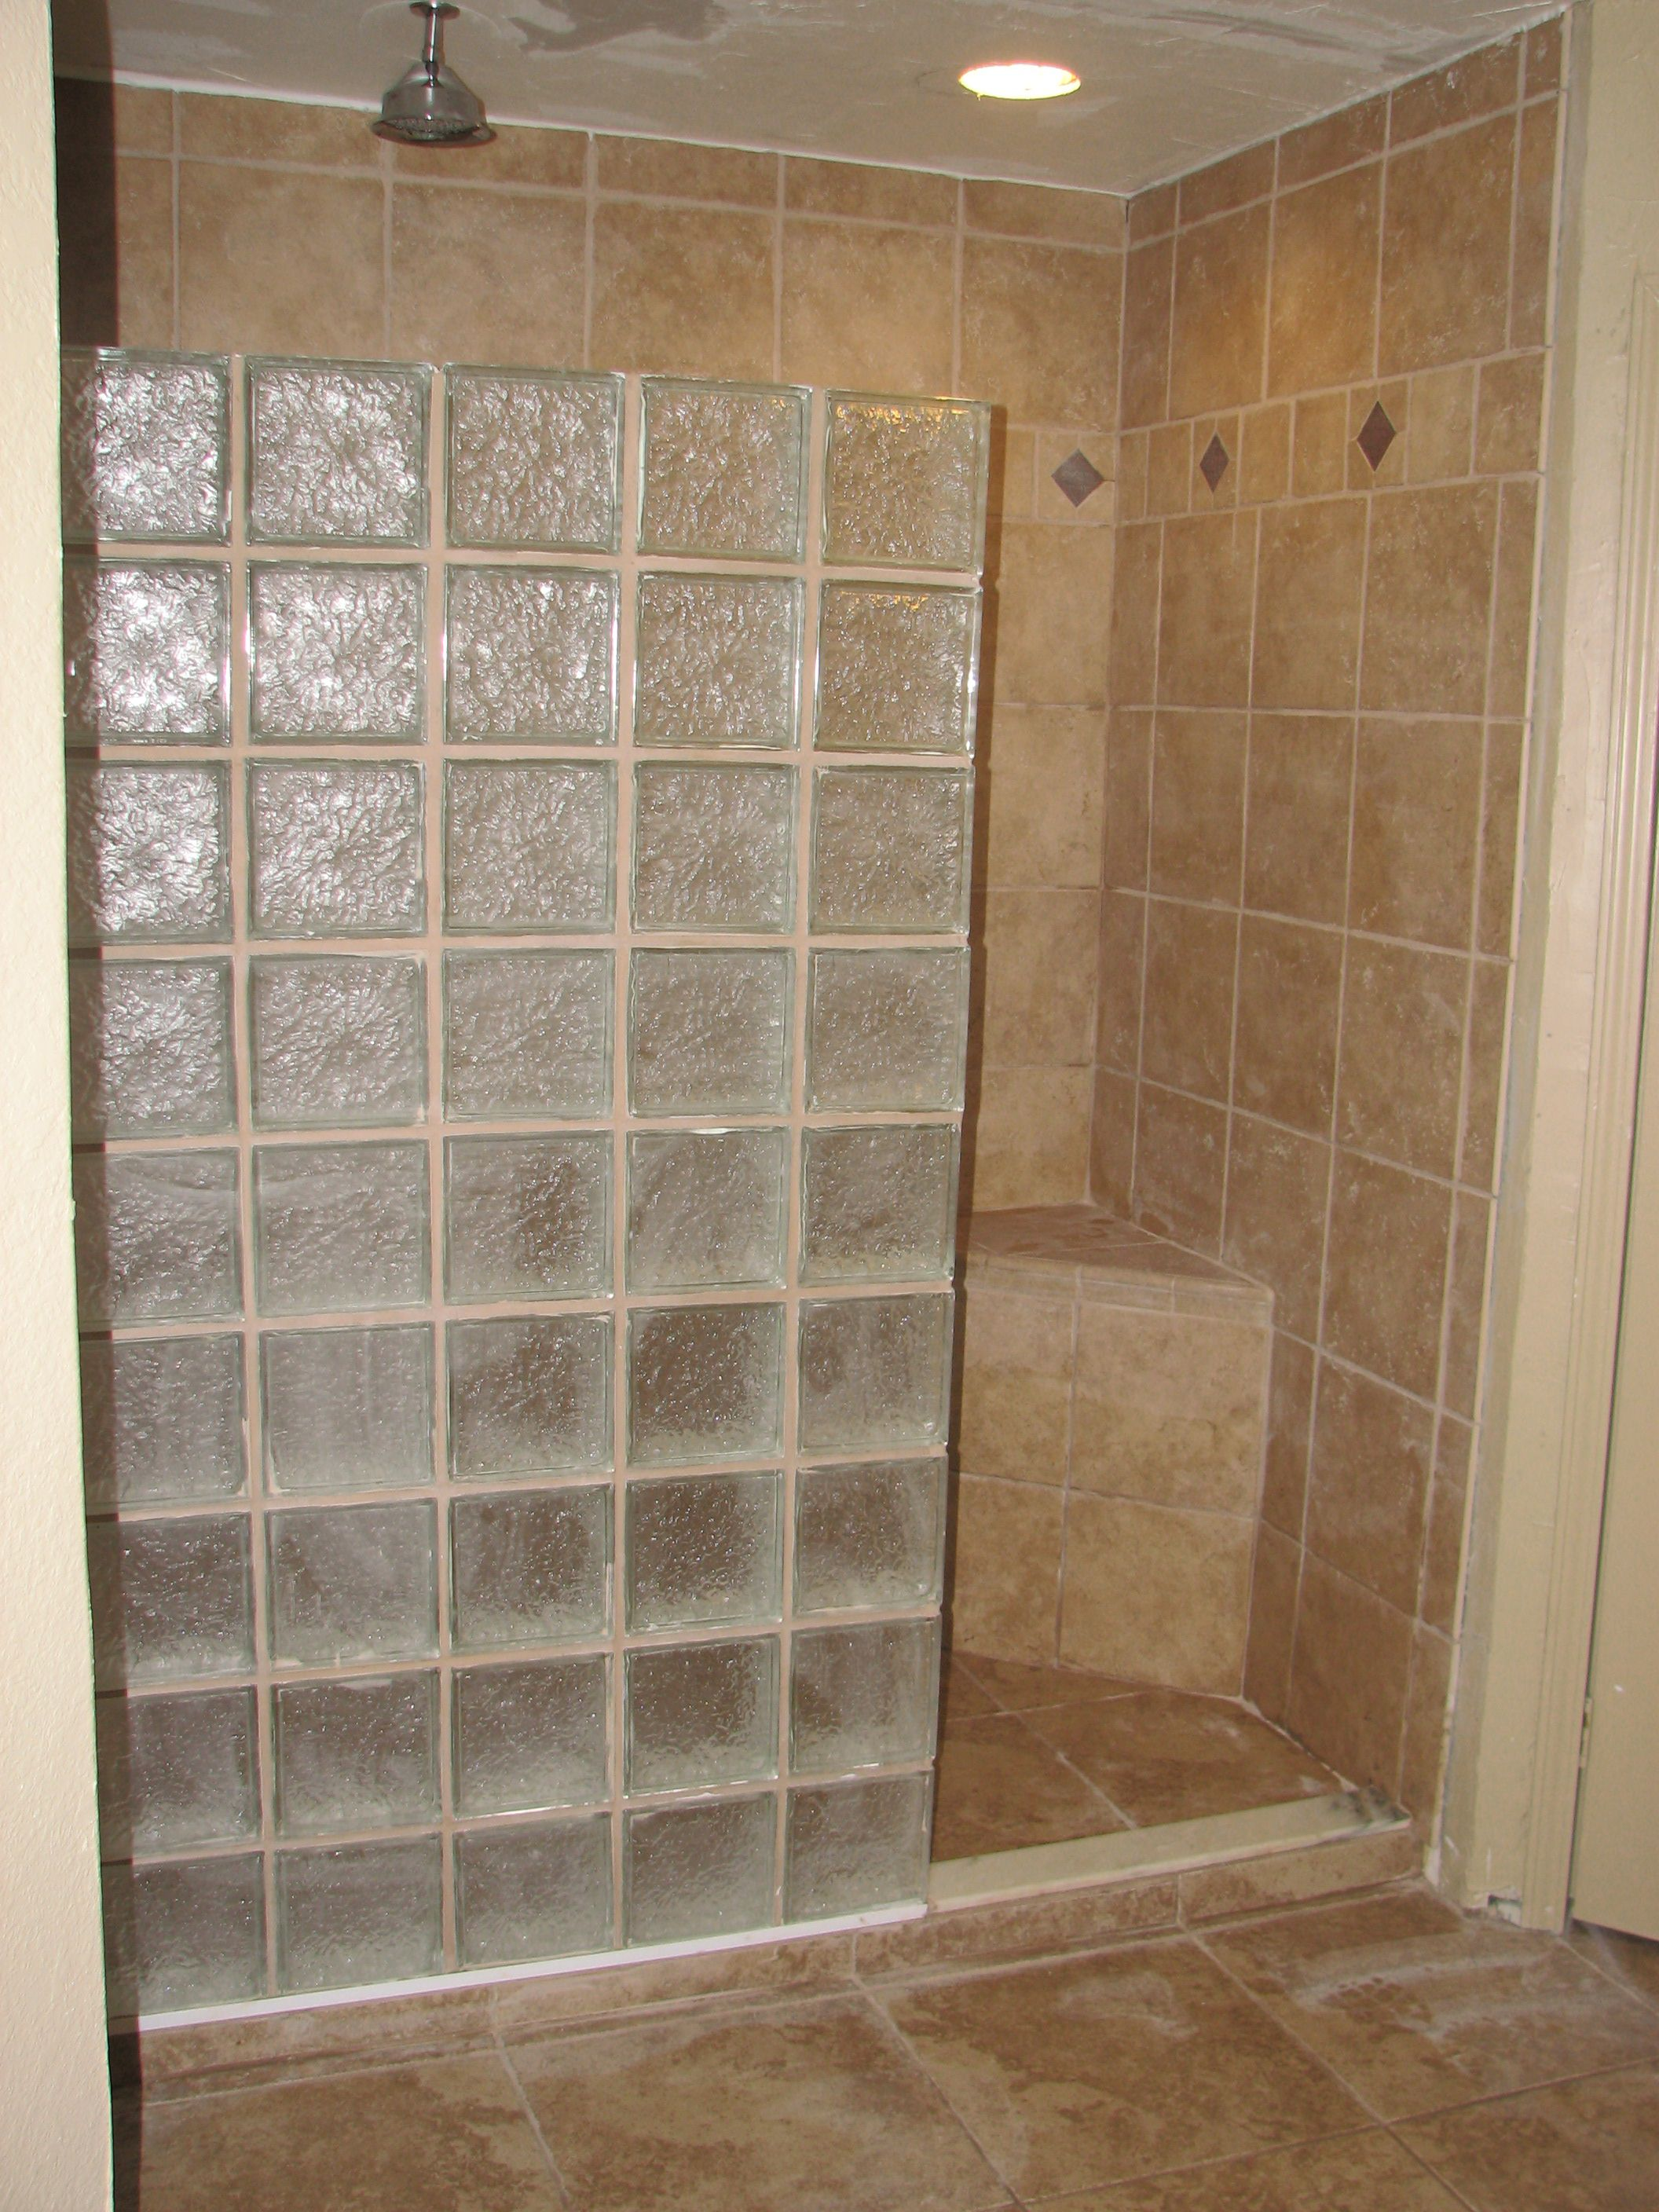 Small space bathroom remodel ideas - Bathroom Small Bathroom Remodeling Bathroom Remodel Construction And Handyman Services Shop Small Network Bathroom Renovations Ideas Bathroom Renovations